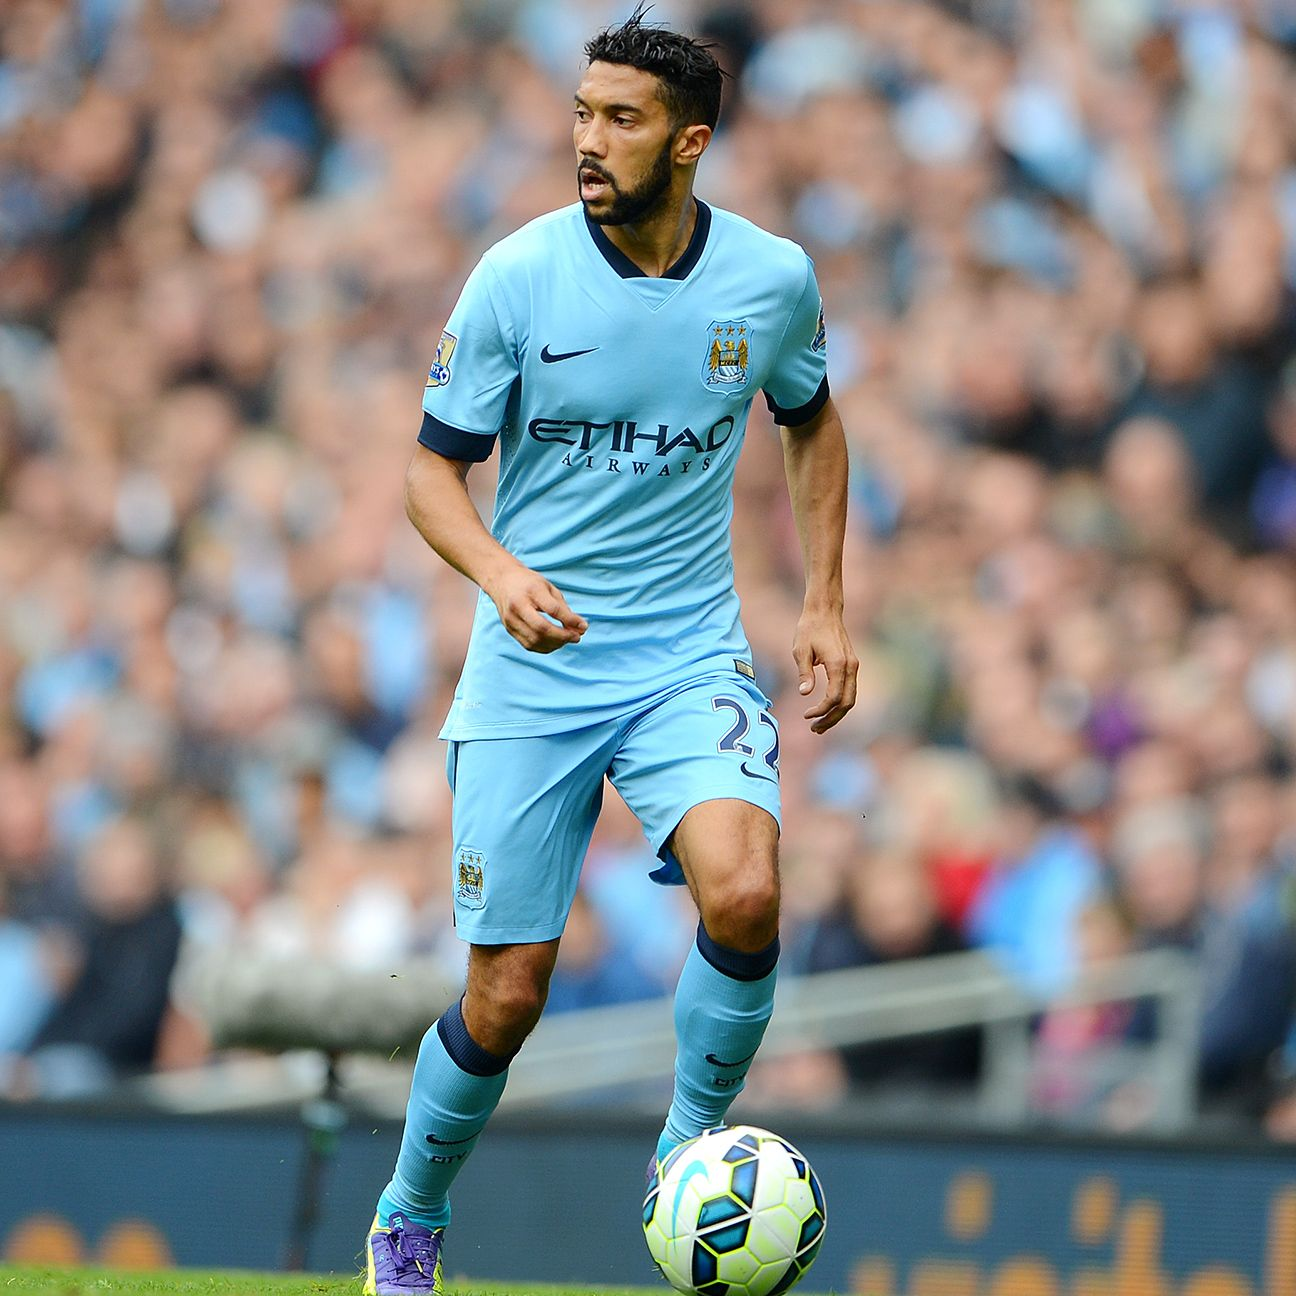 An upturn in form from the likes of Gael Clichy should help City's Champions League campaign.